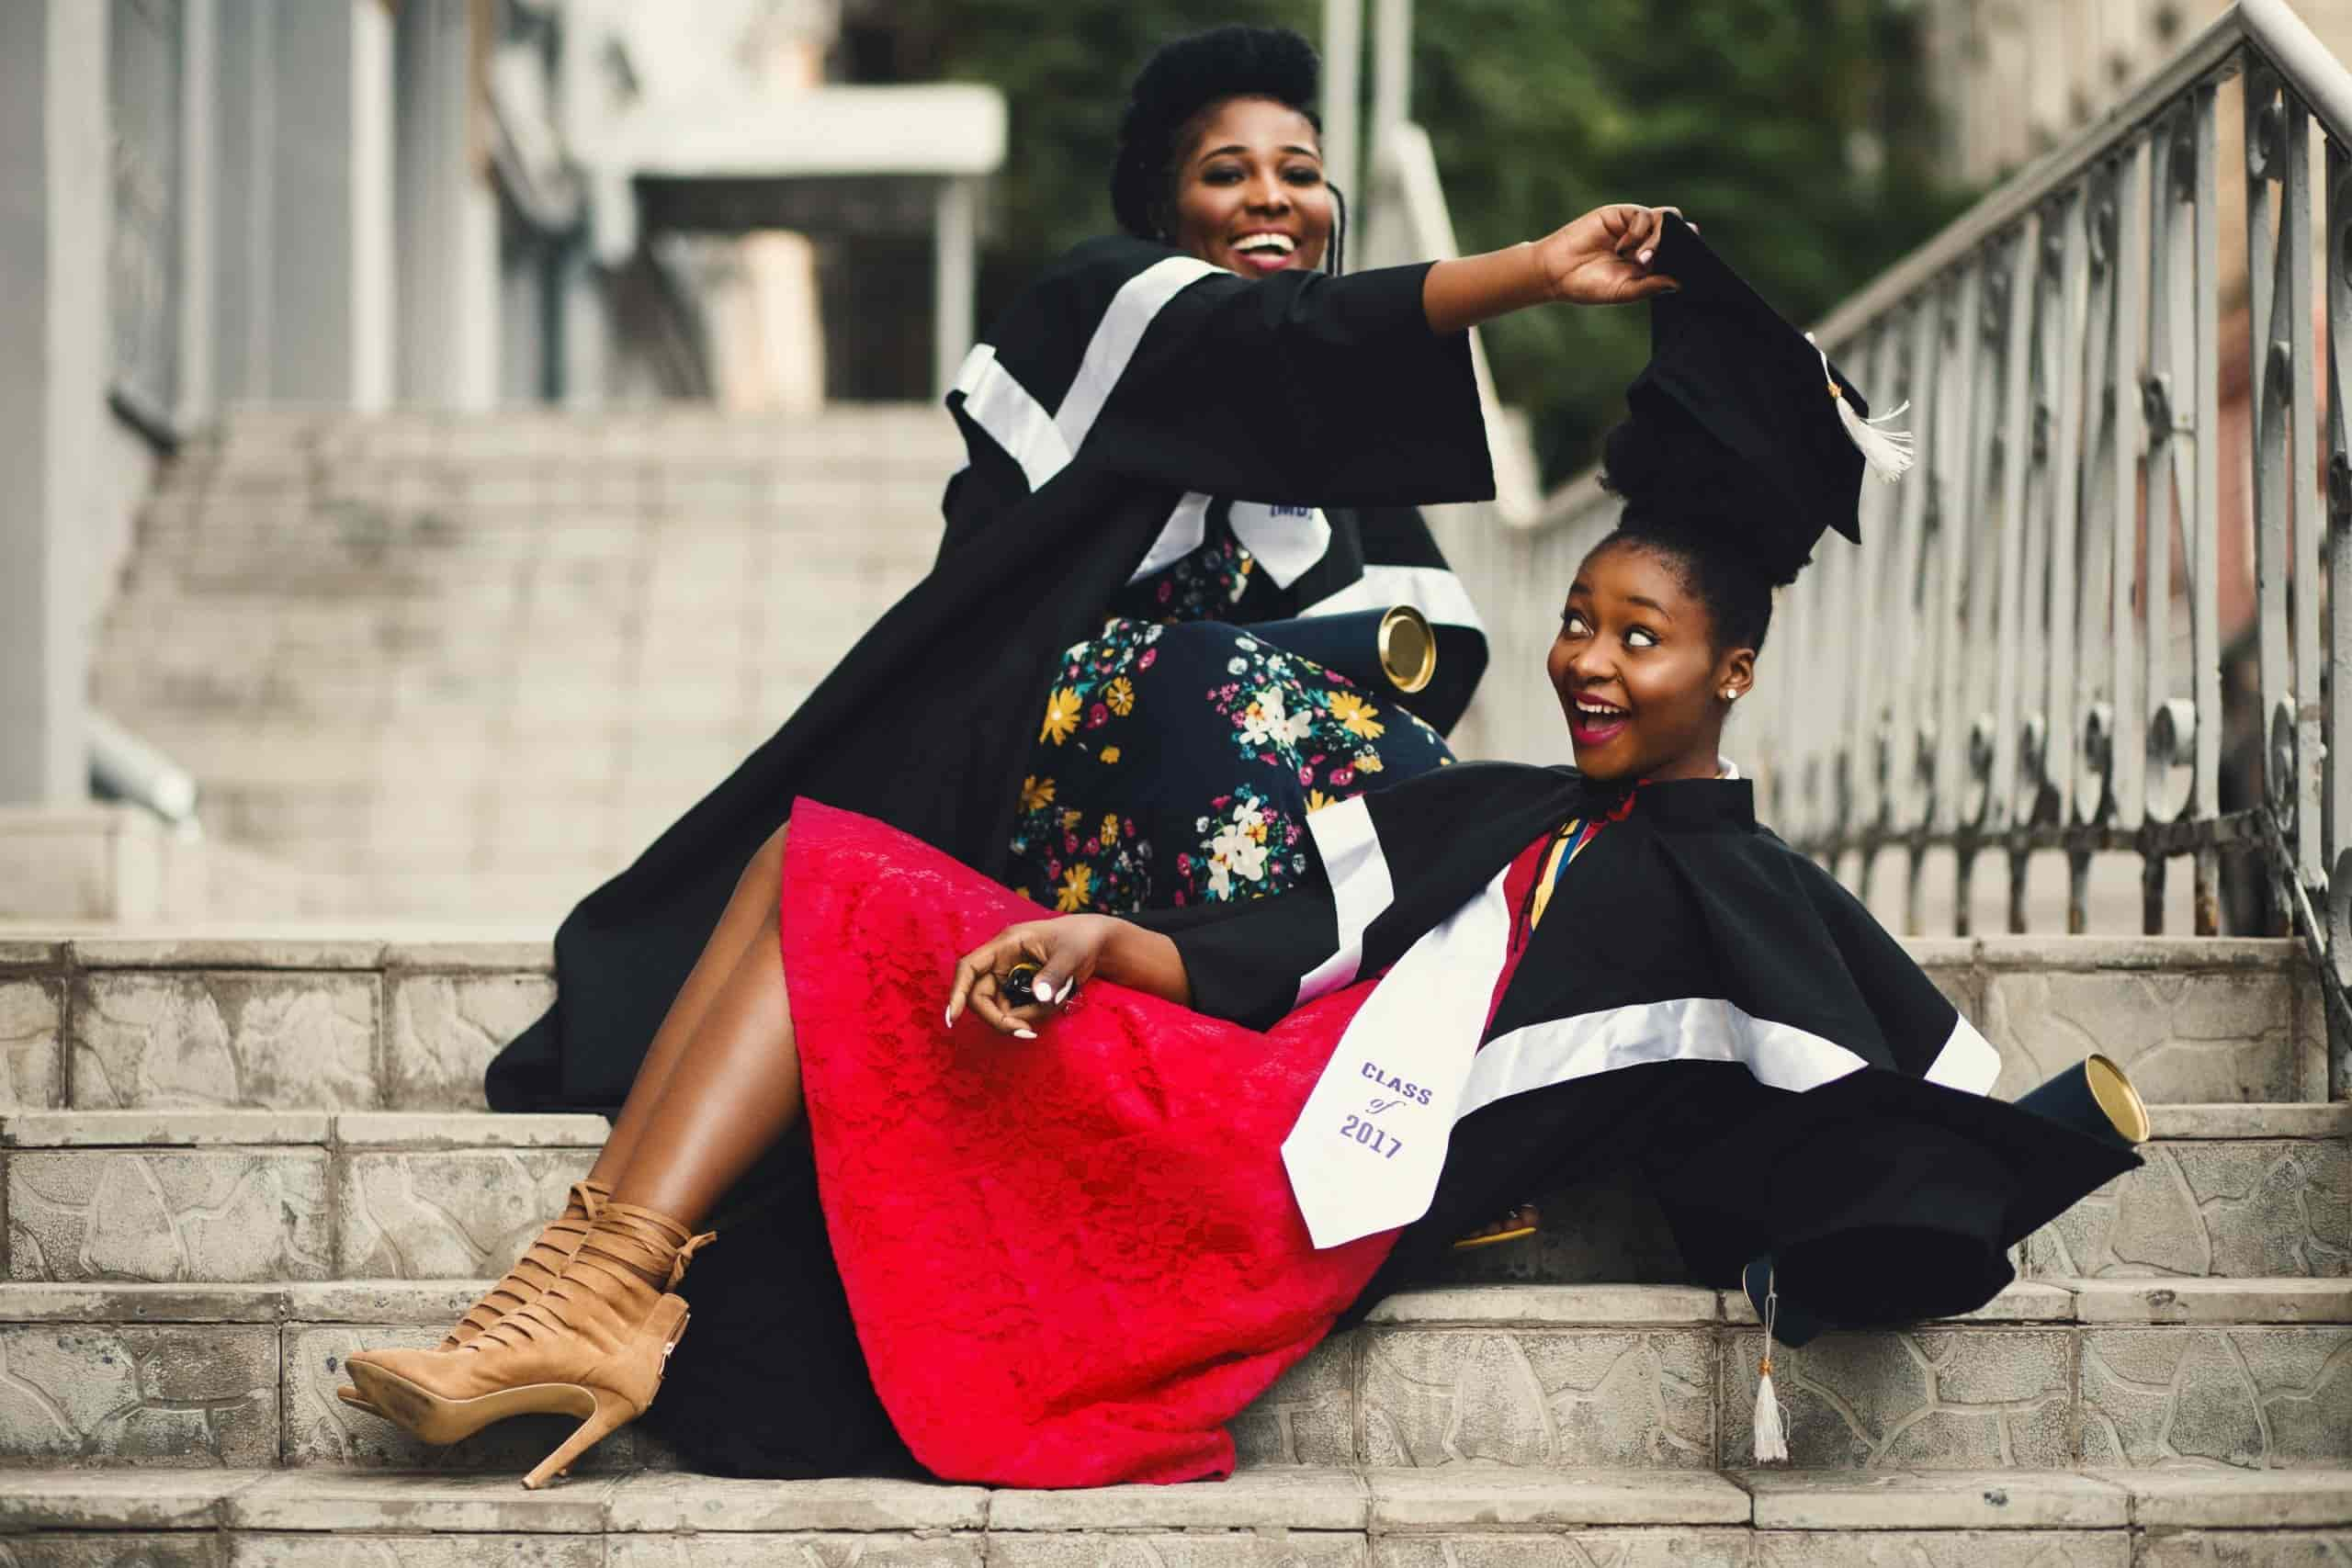 Photo of two women in graduation gowns on stairs, smiling, for page on Life Insurance Reviews